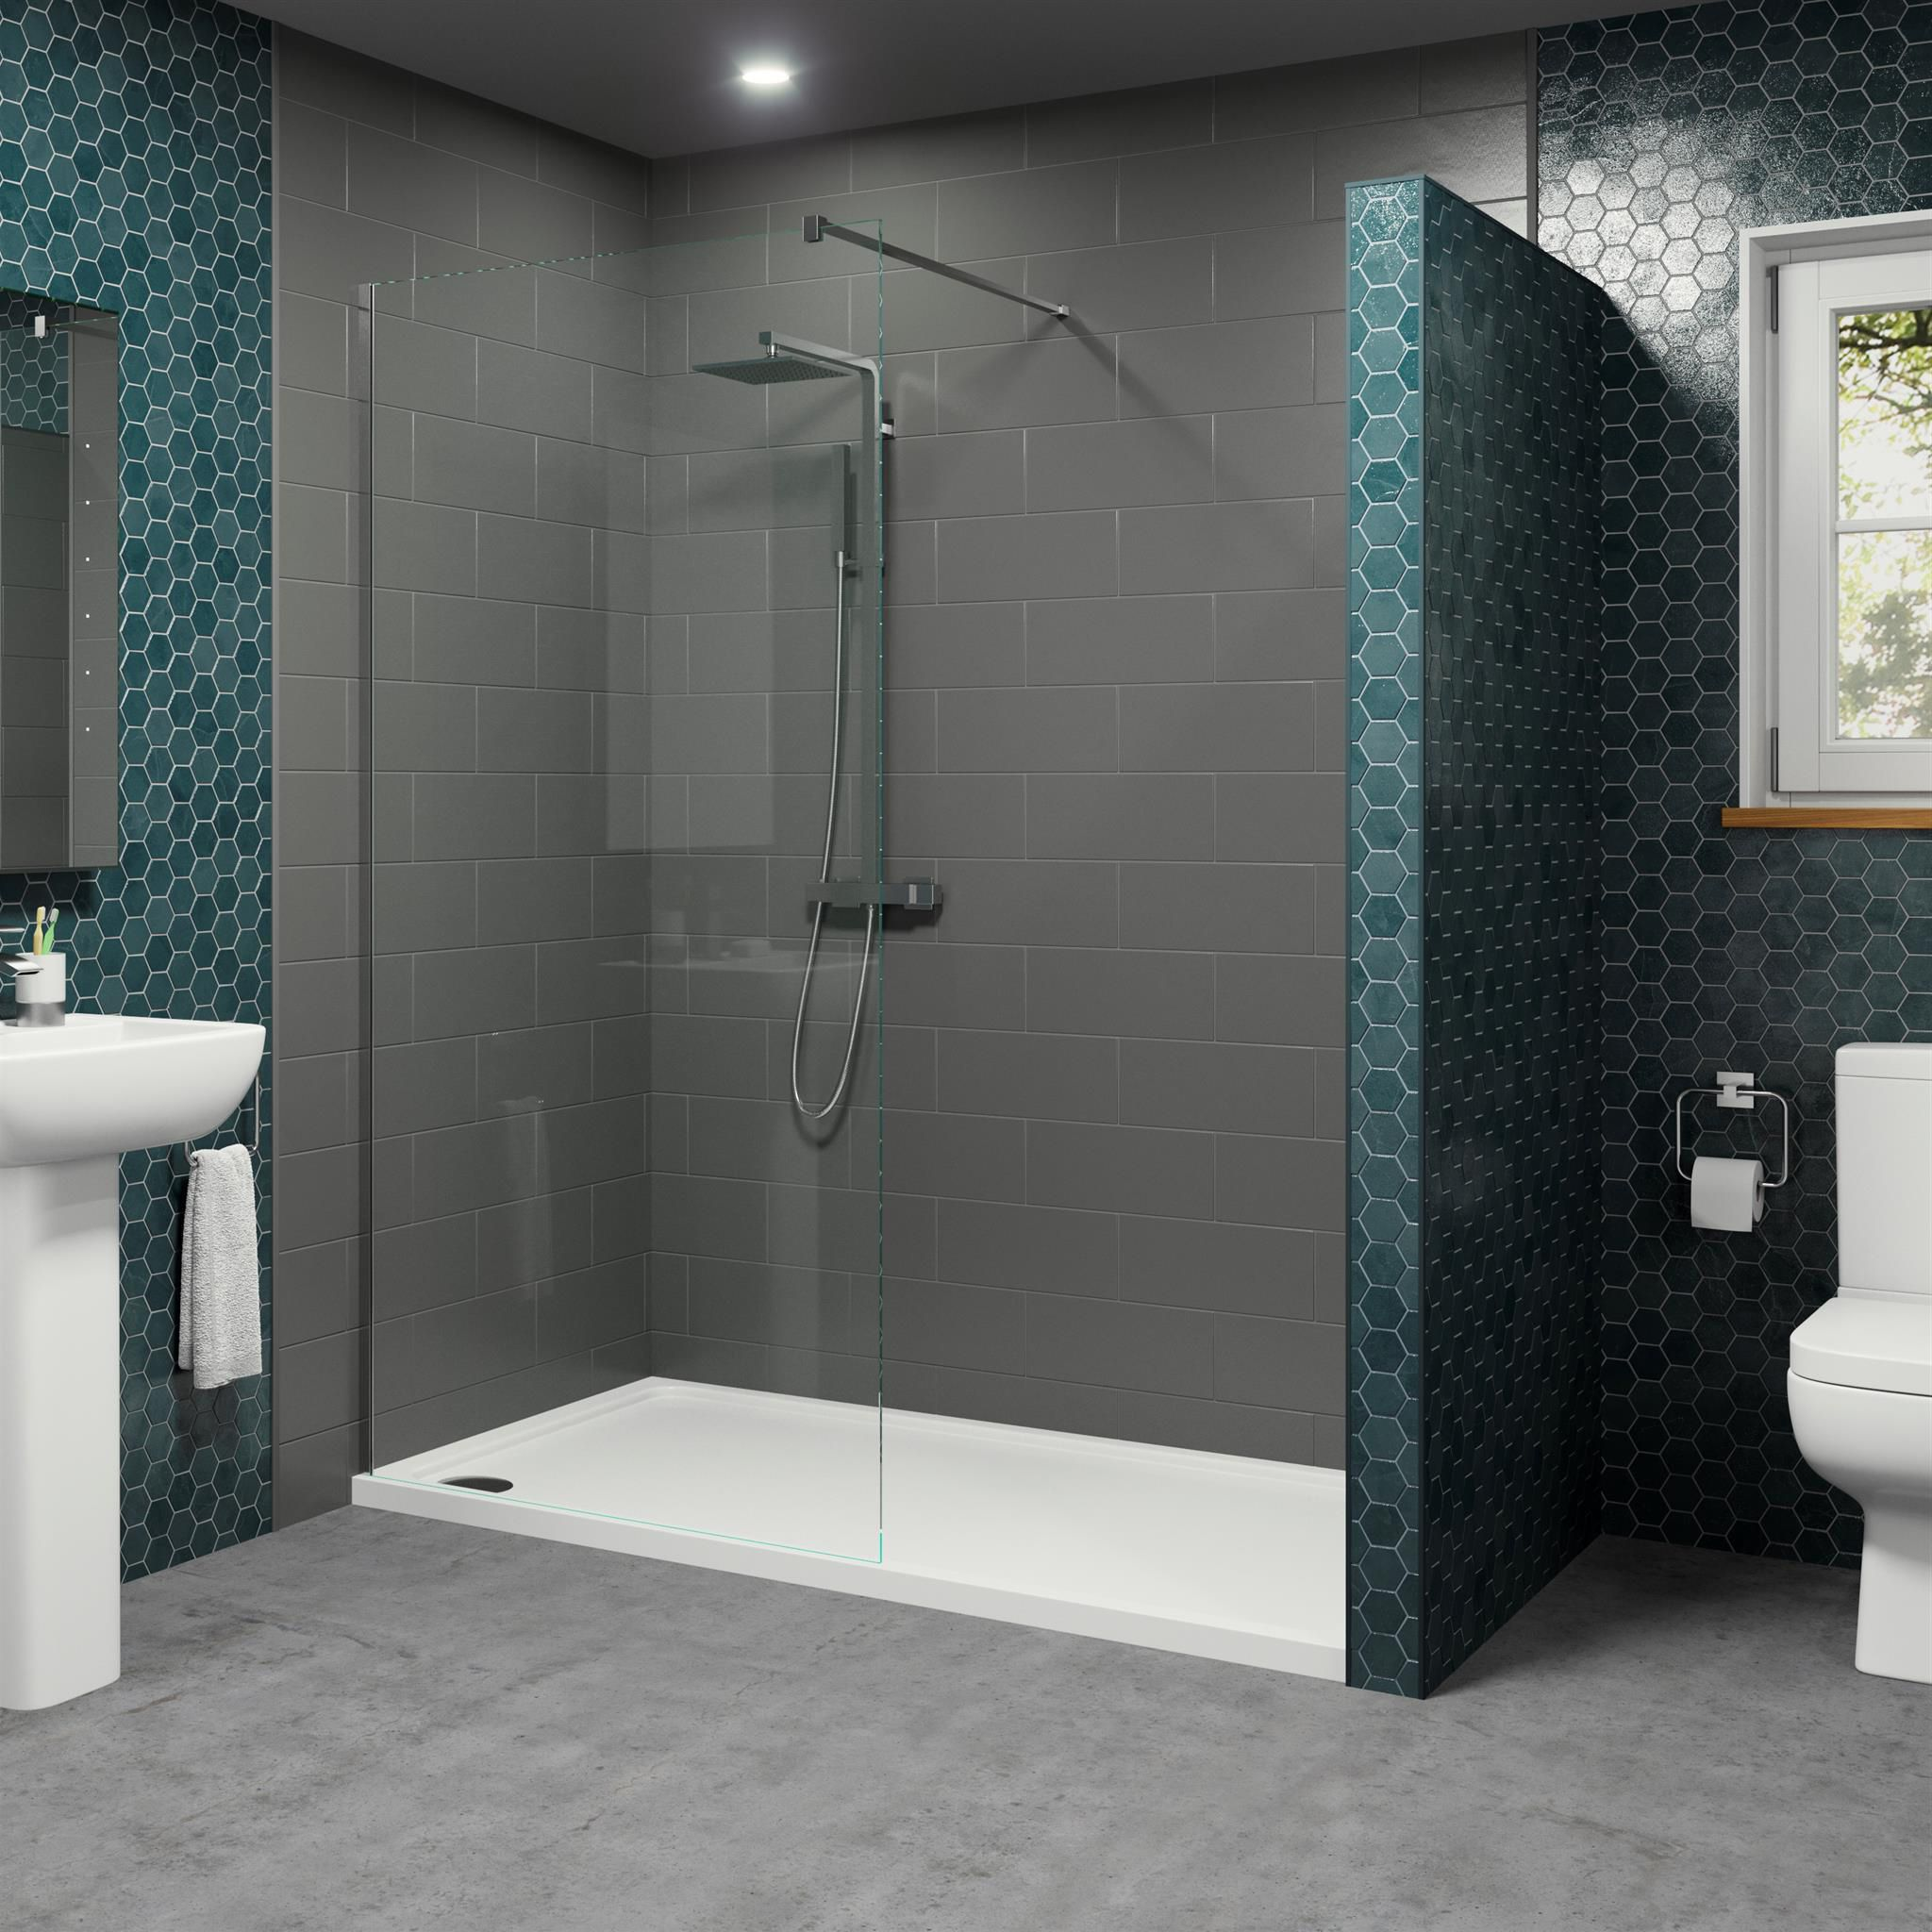 1700 X 700mm Walk In Shower Enclosure 1000mm Screen 8mm Glass And Podium Anti Slip Tray Shower Enclosure Walk In Shower Enclosures Walk In Shower